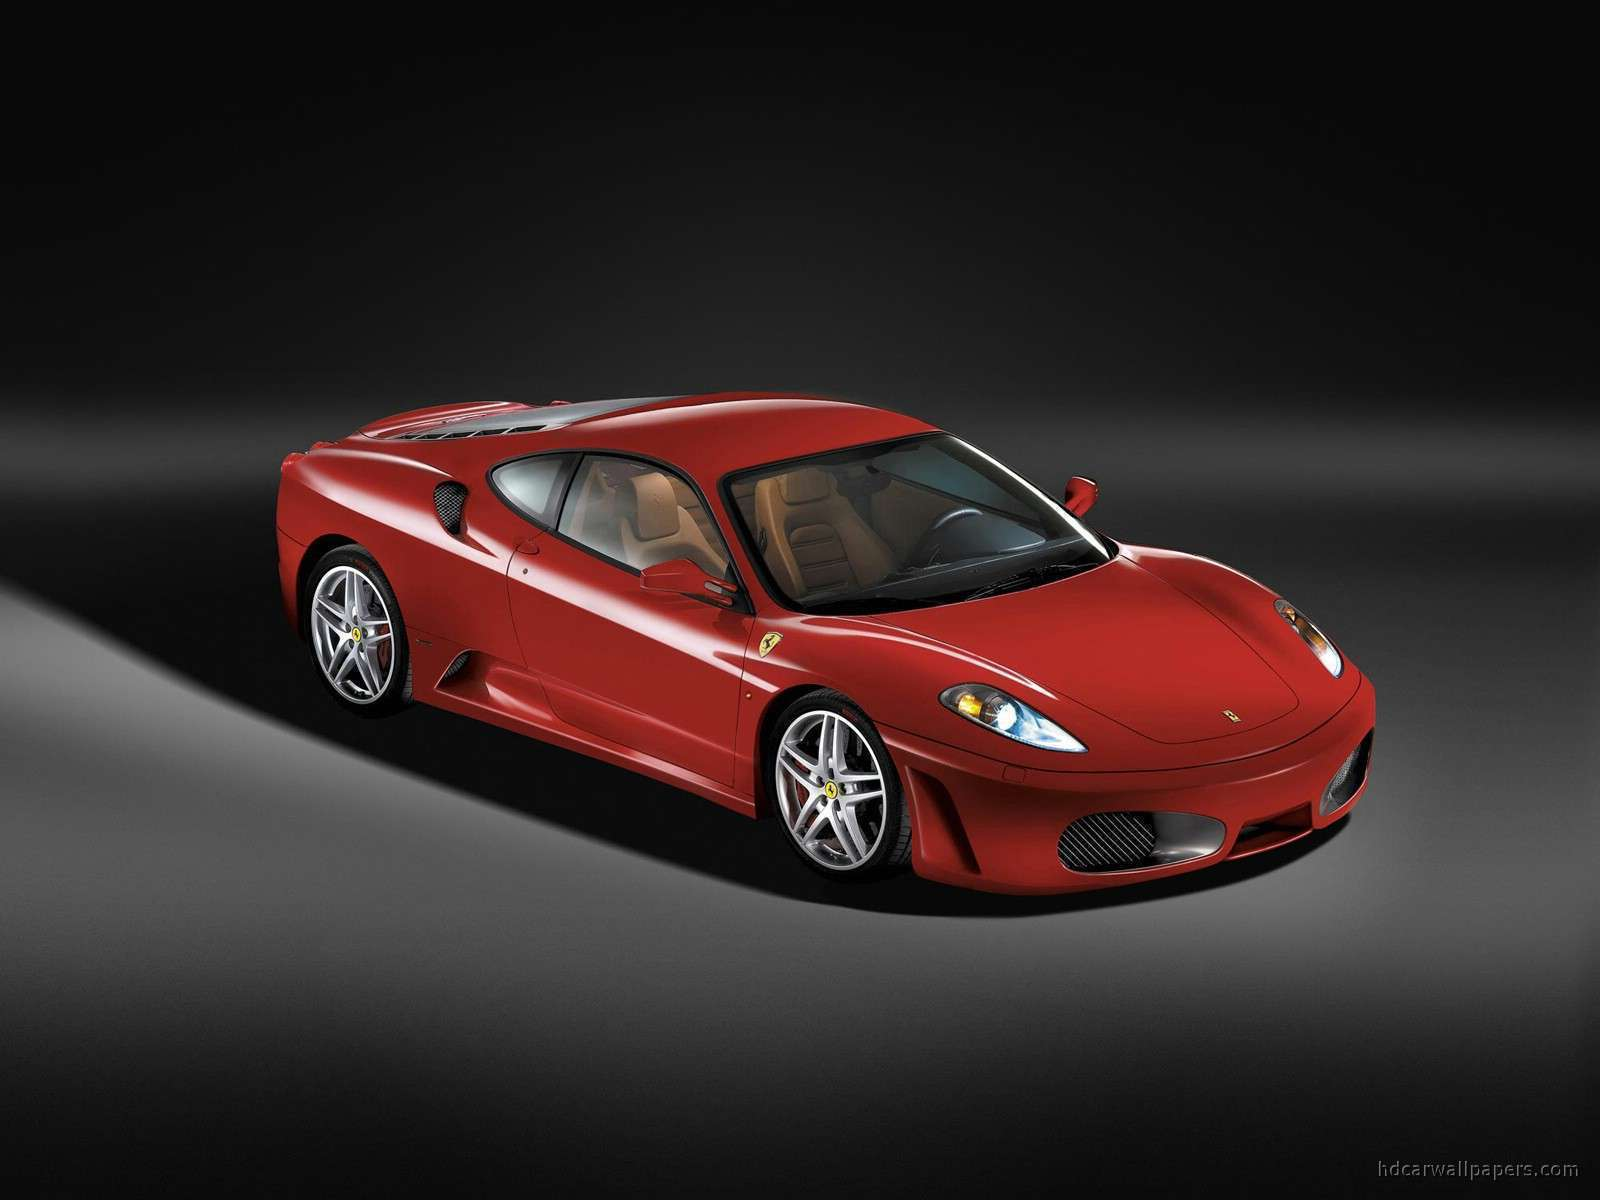 Ferrari F430 Hd Wallpapers